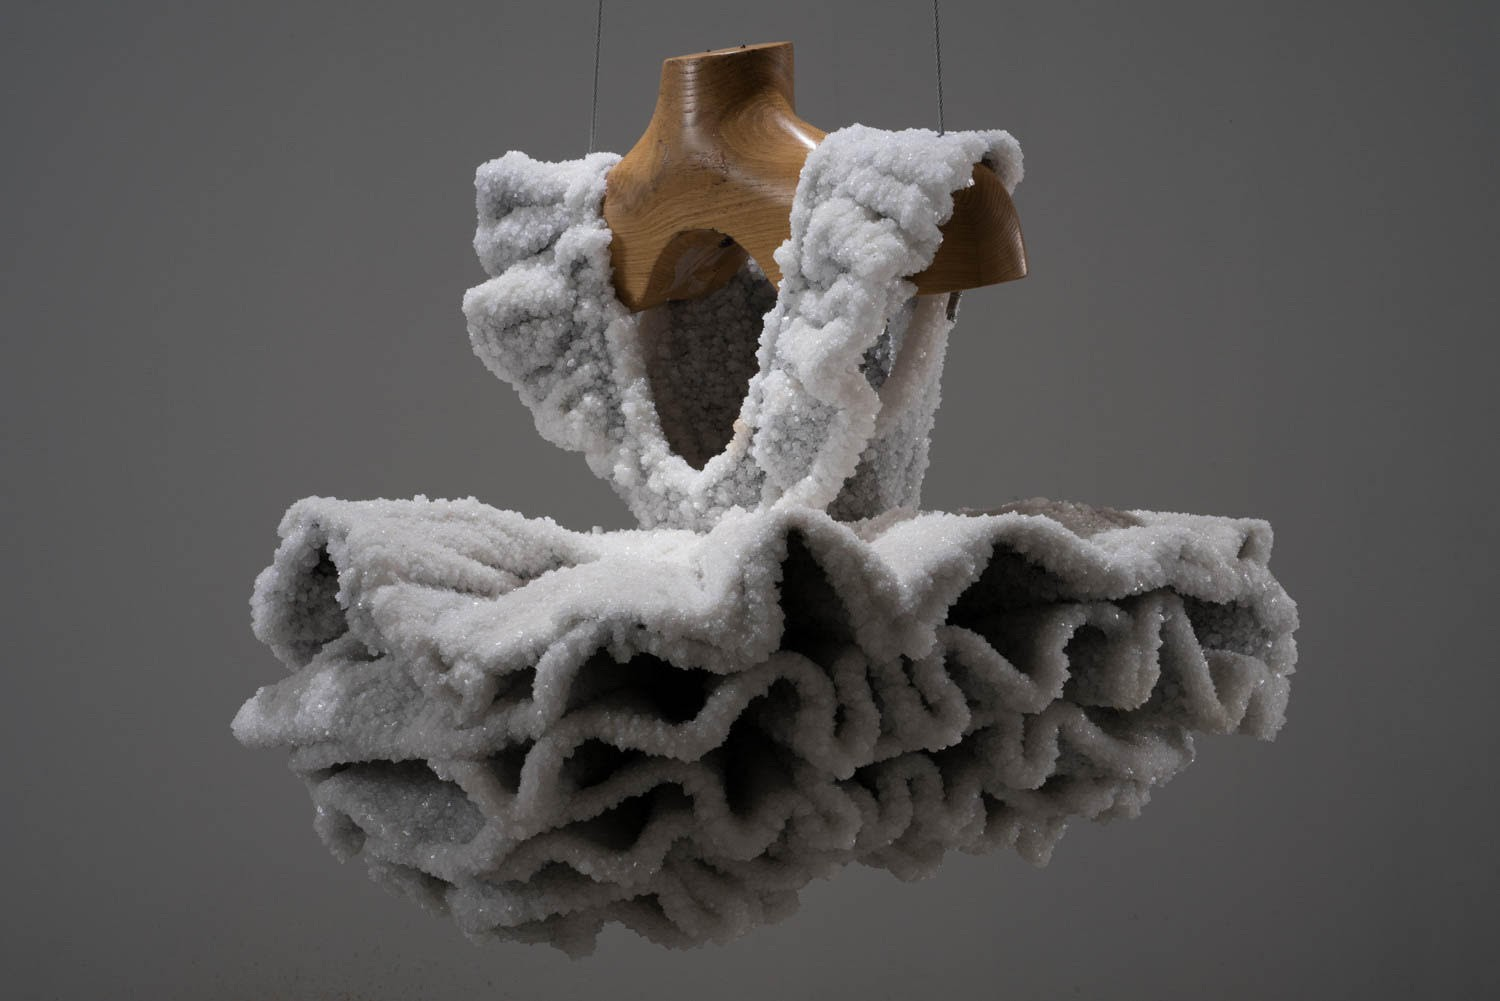 Tightly Salted Sculptures by Sigalit Landau